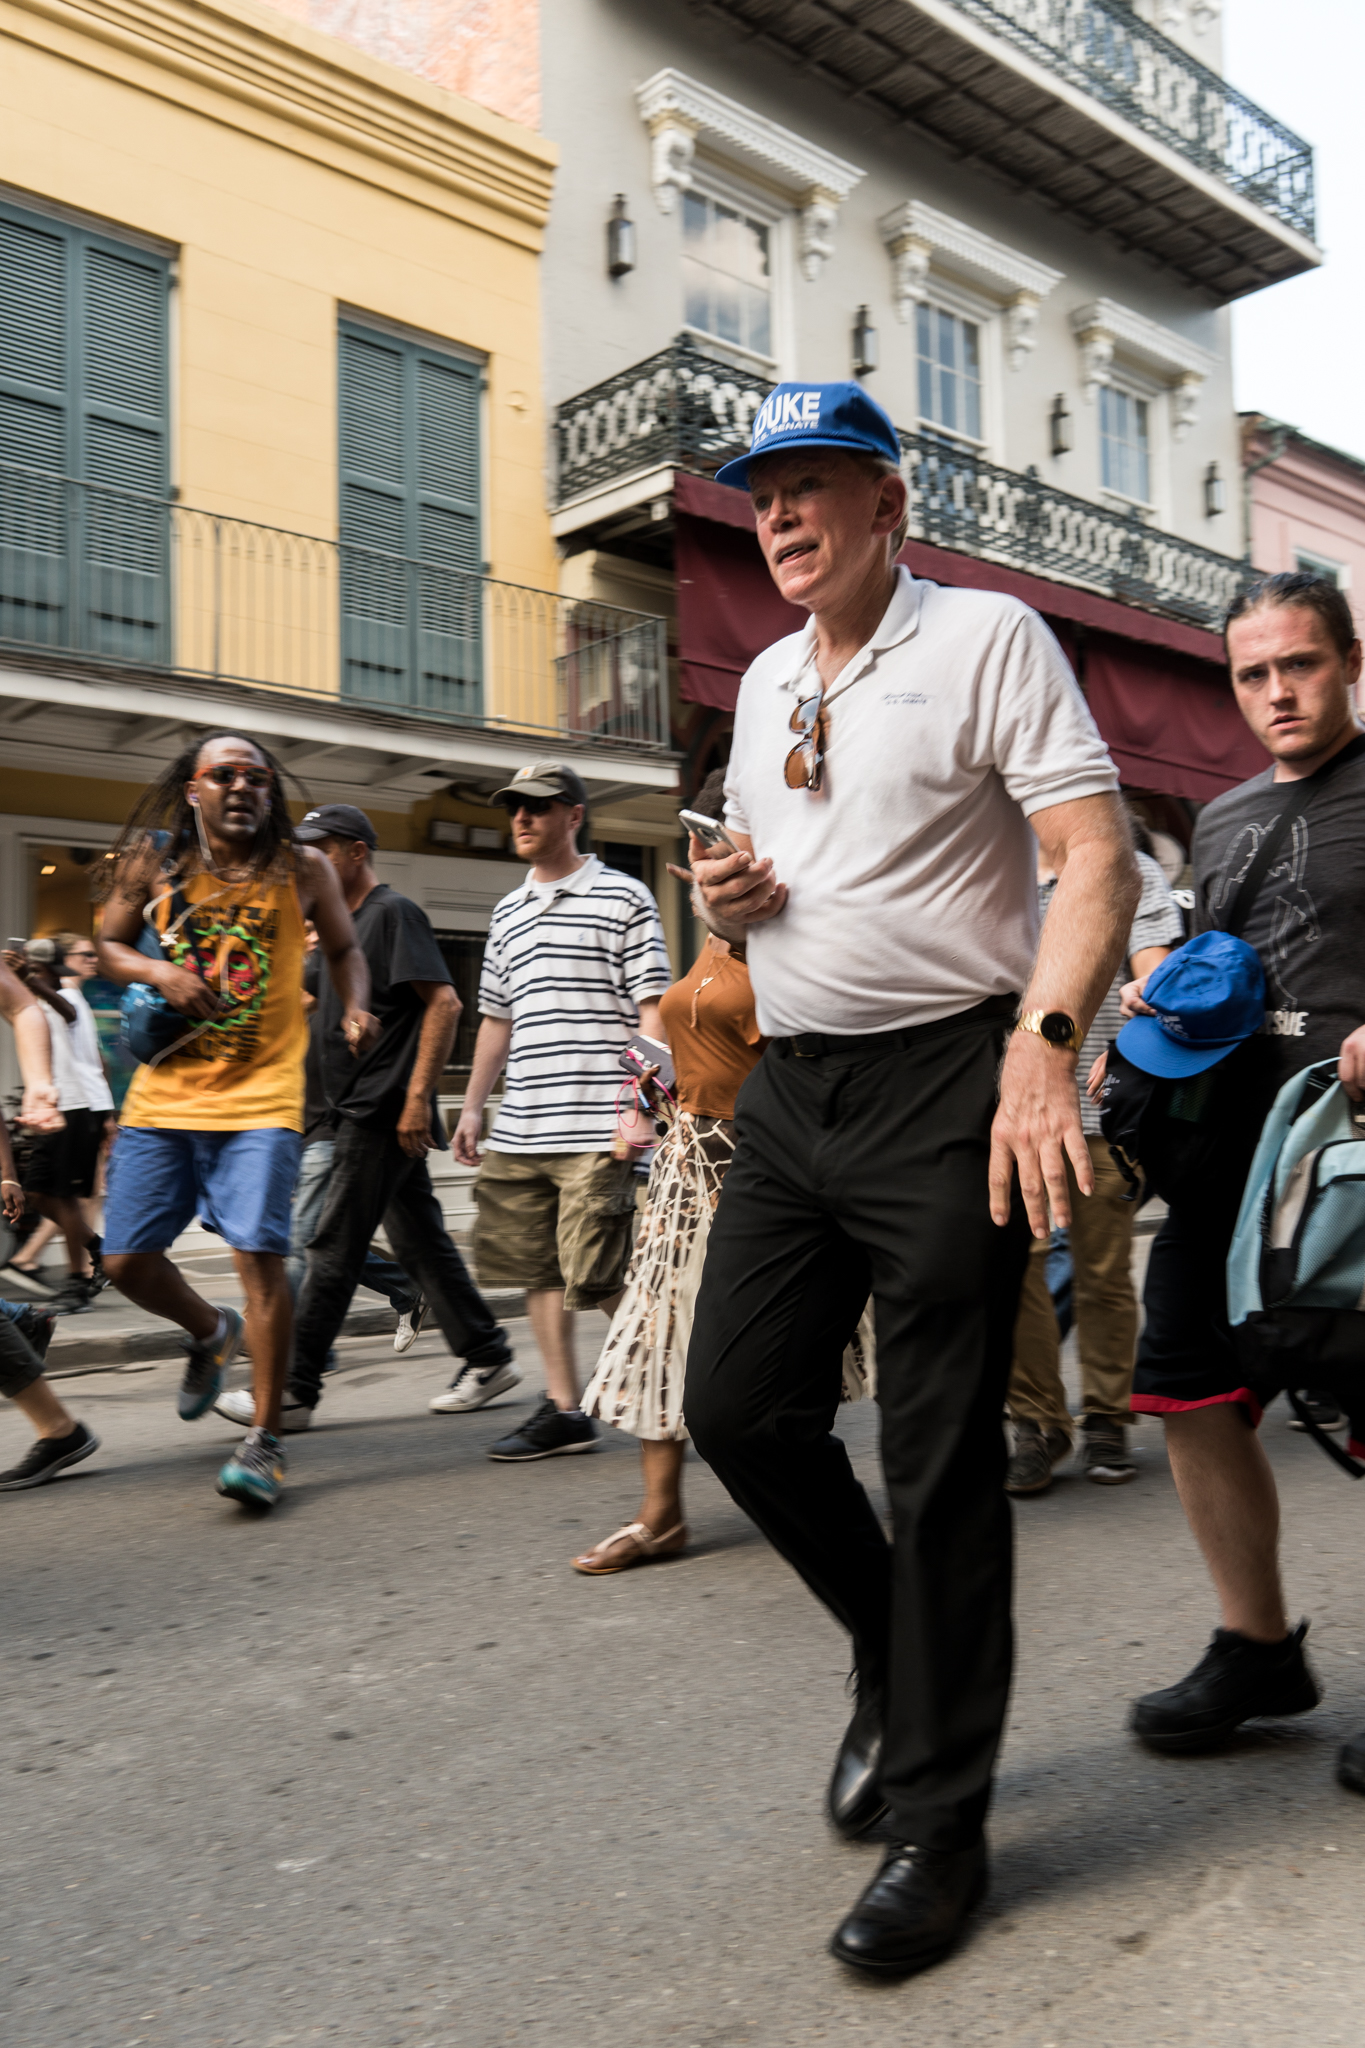 Protesters chase David Duke down Chartres Street in the French Quarter.